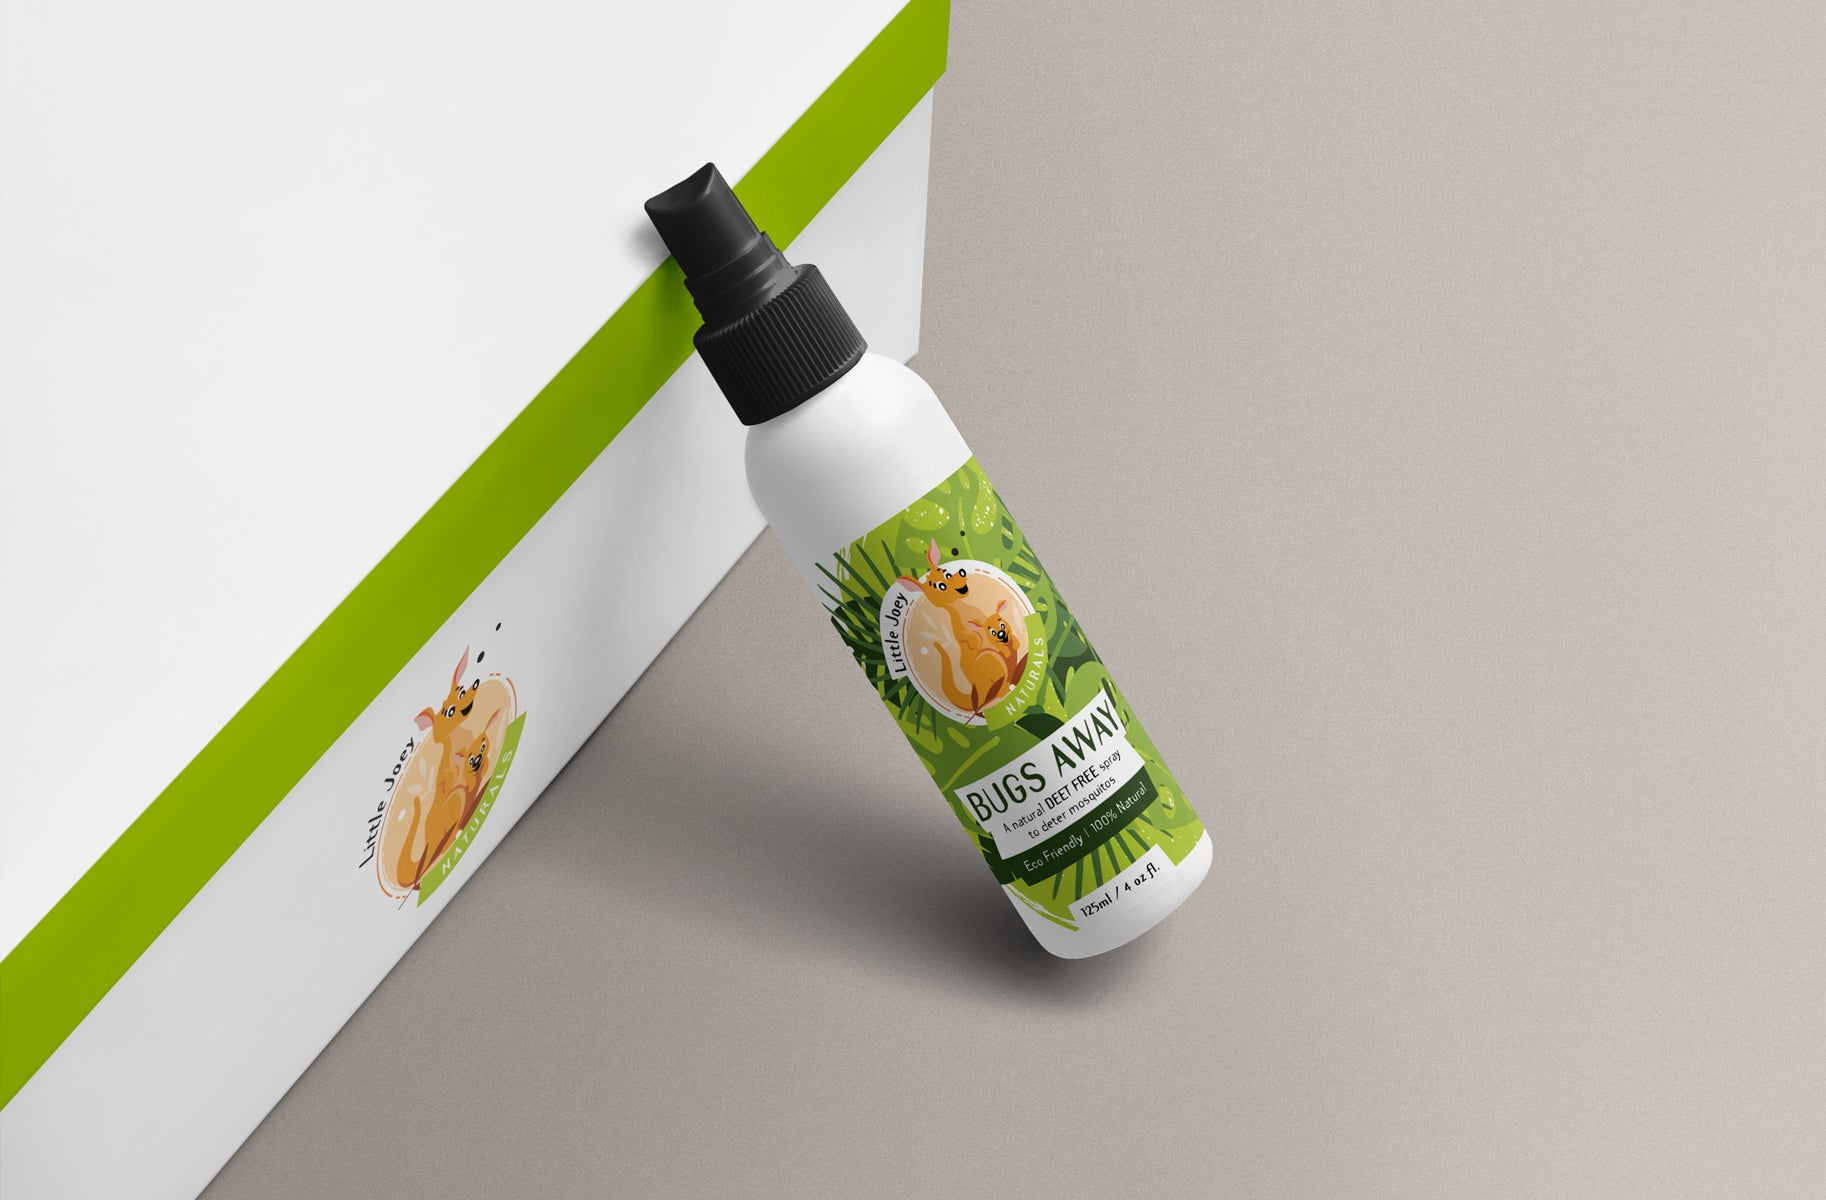 Bugs Away - Insect Repellent Spray